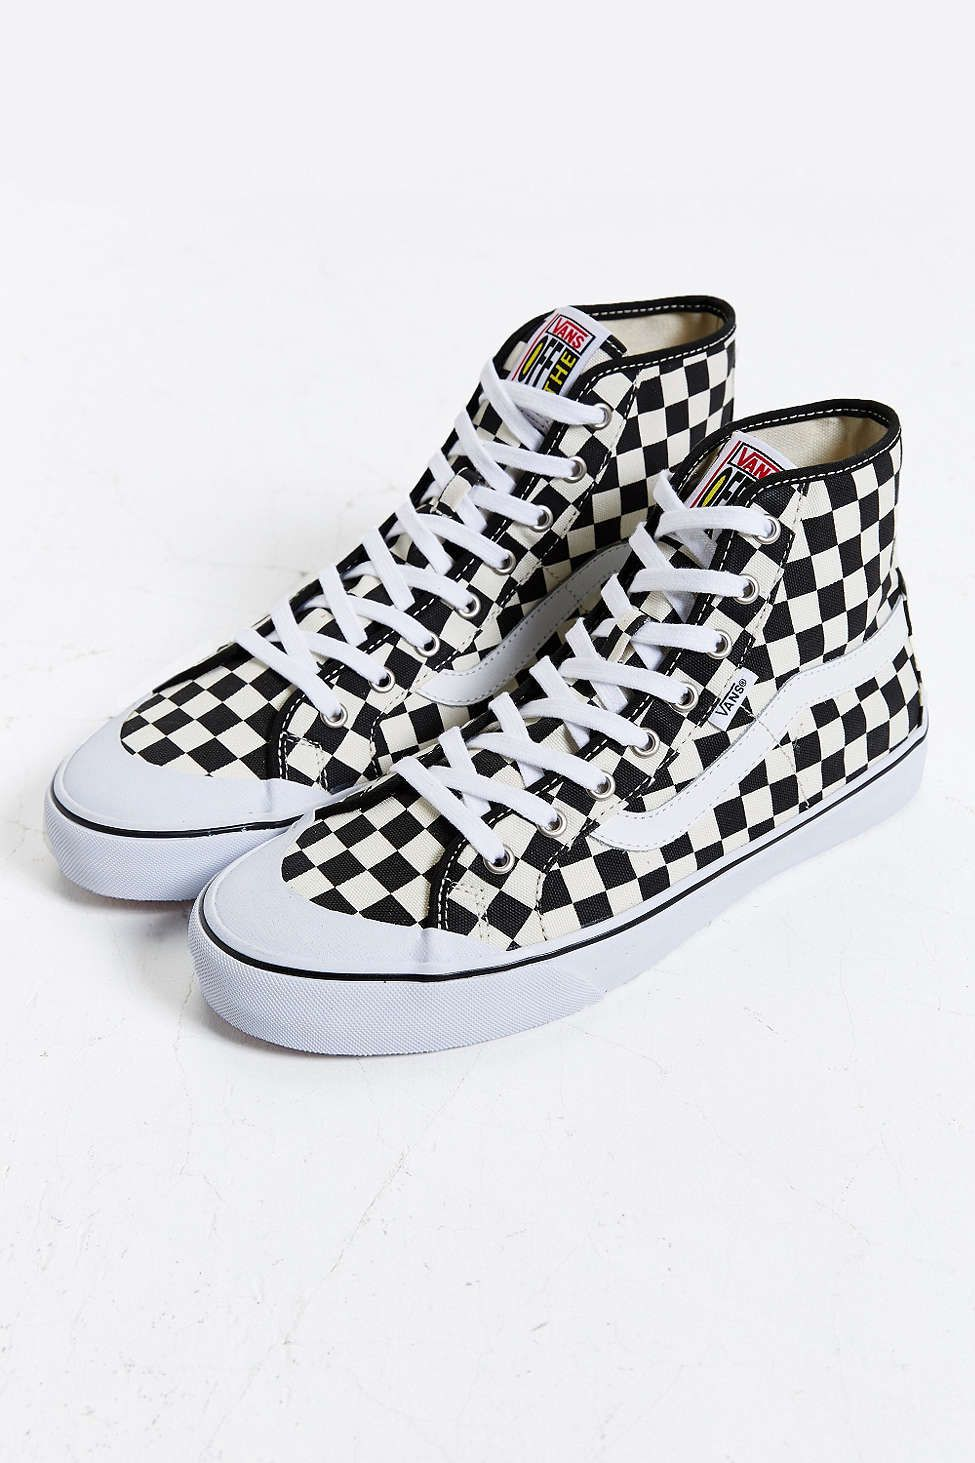 38eb2c3ea0e1 all checkered high top vans Sale